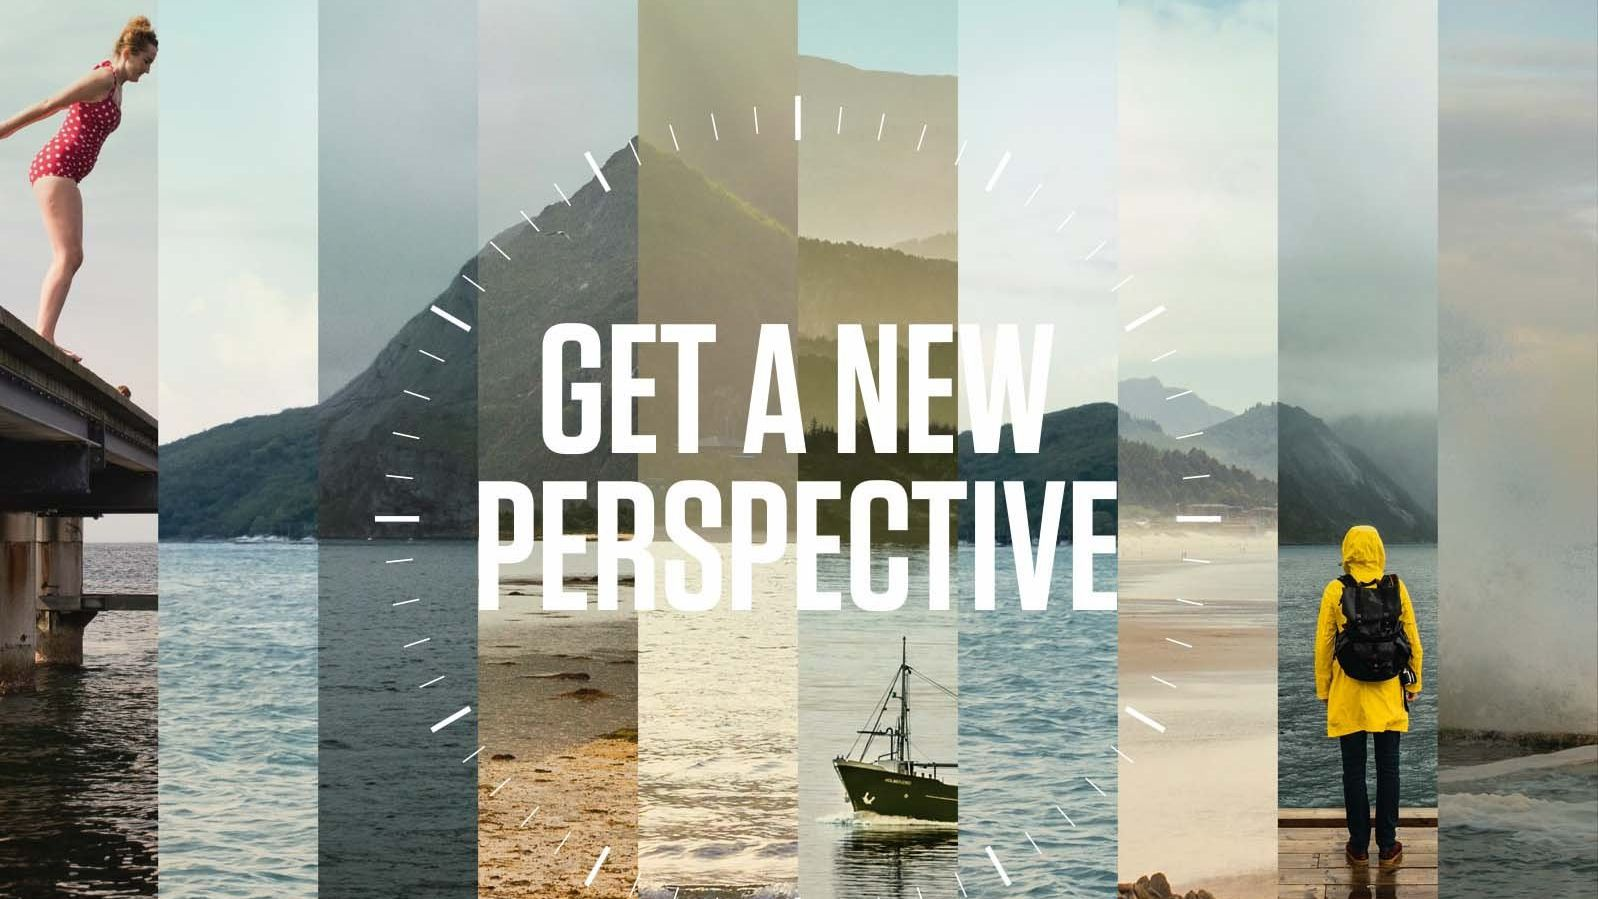 Get a new perspective this summer